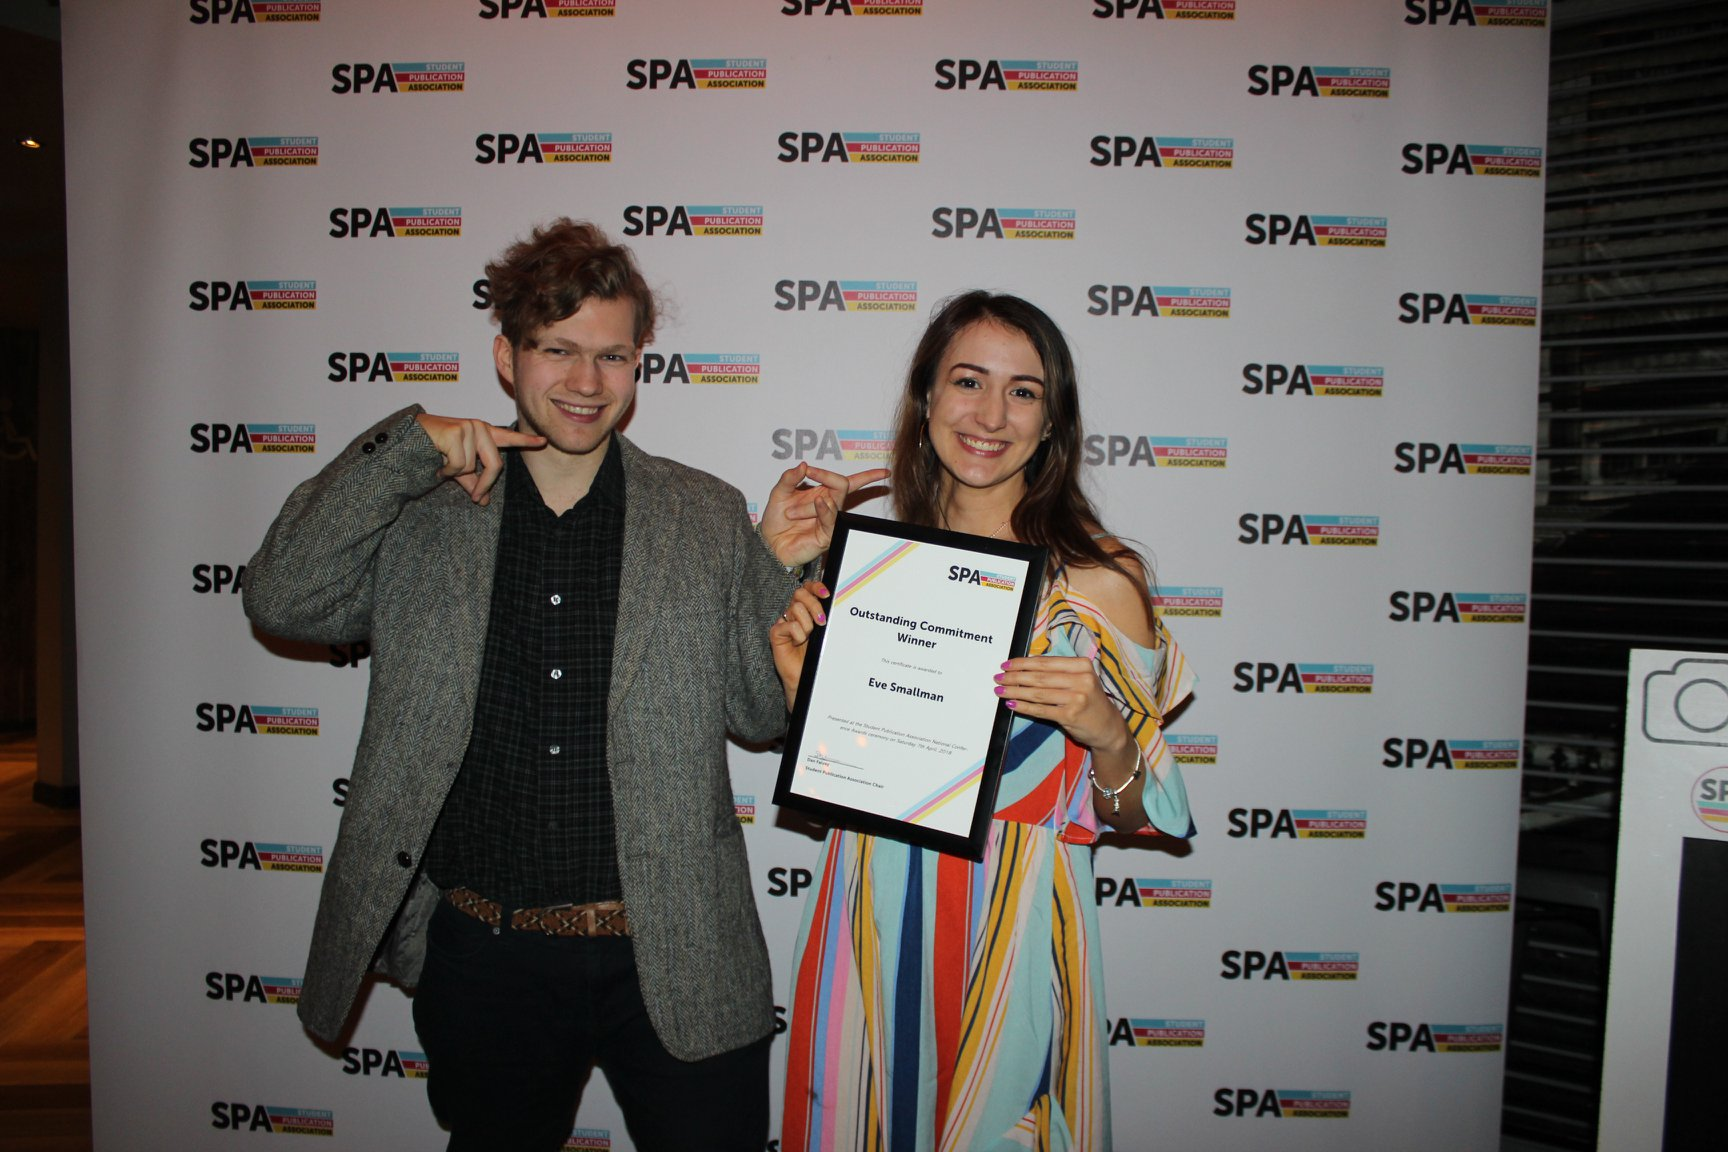 Student Publication Association National Conference (#SPANC18)